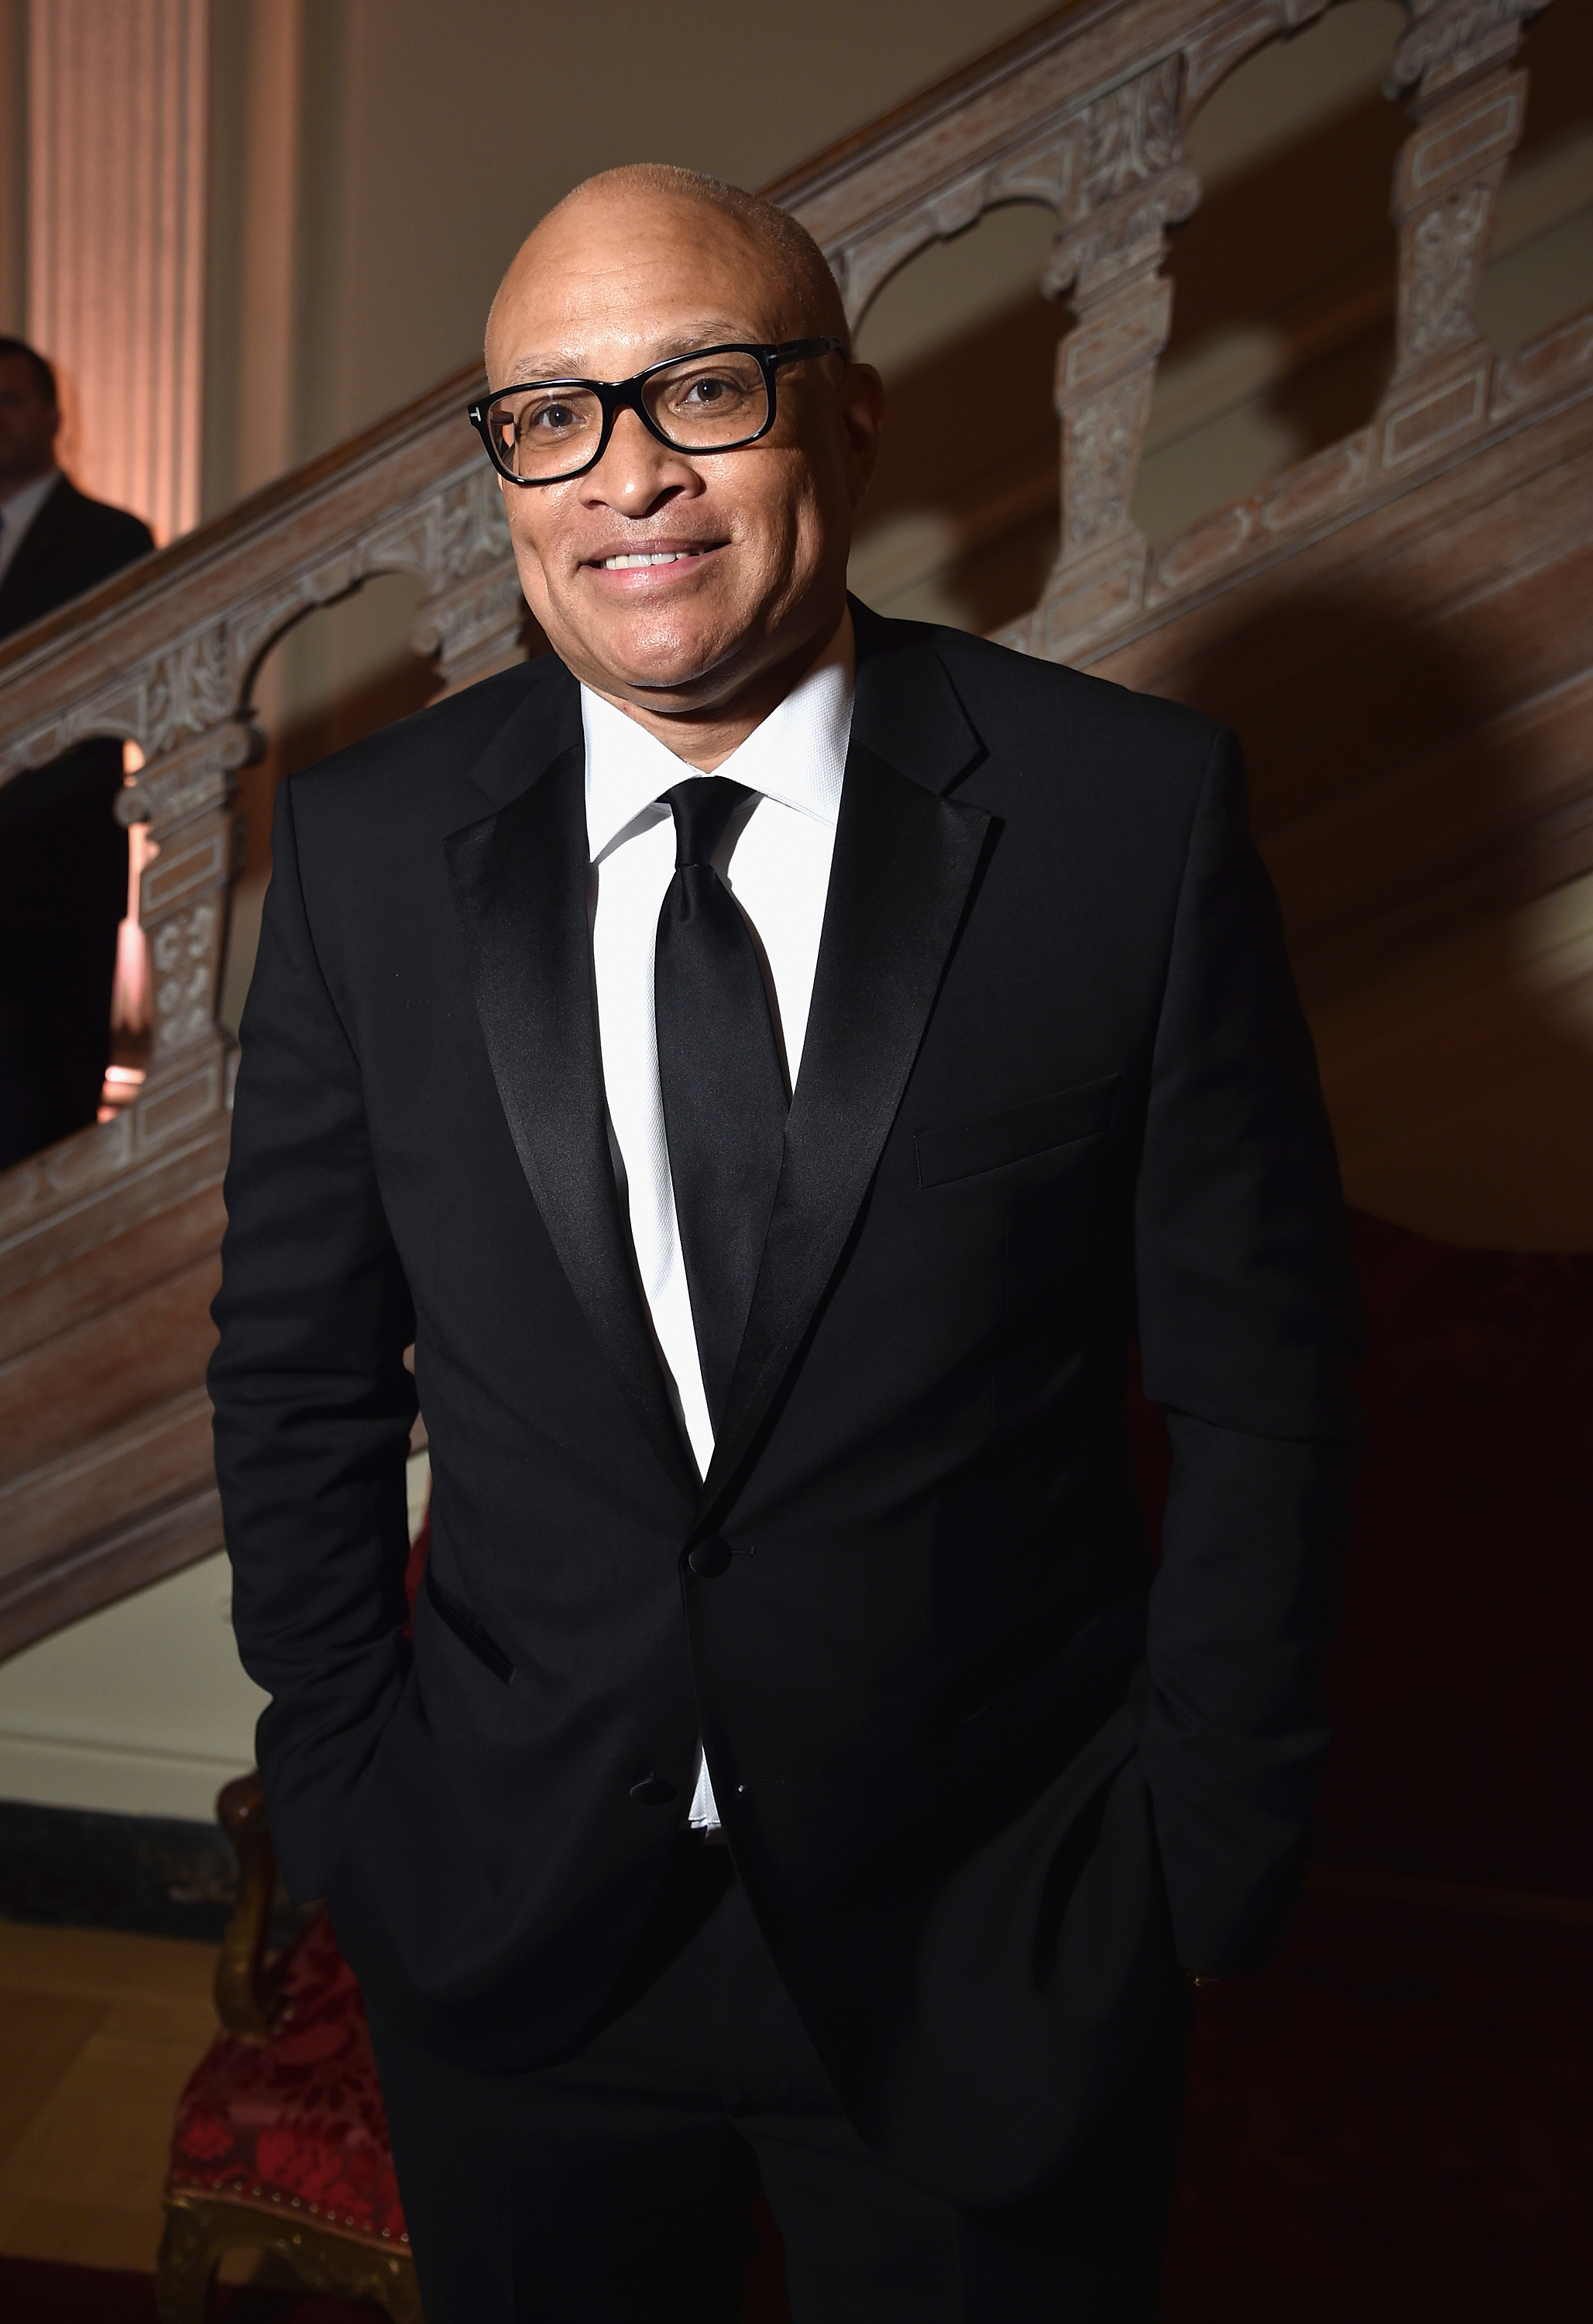 Larry Wilmore attends the Bloomberg & Vanity Fair cocktail reception following the 2015 WHCA Dinner in Washington, D.C., on April 30, 2016.